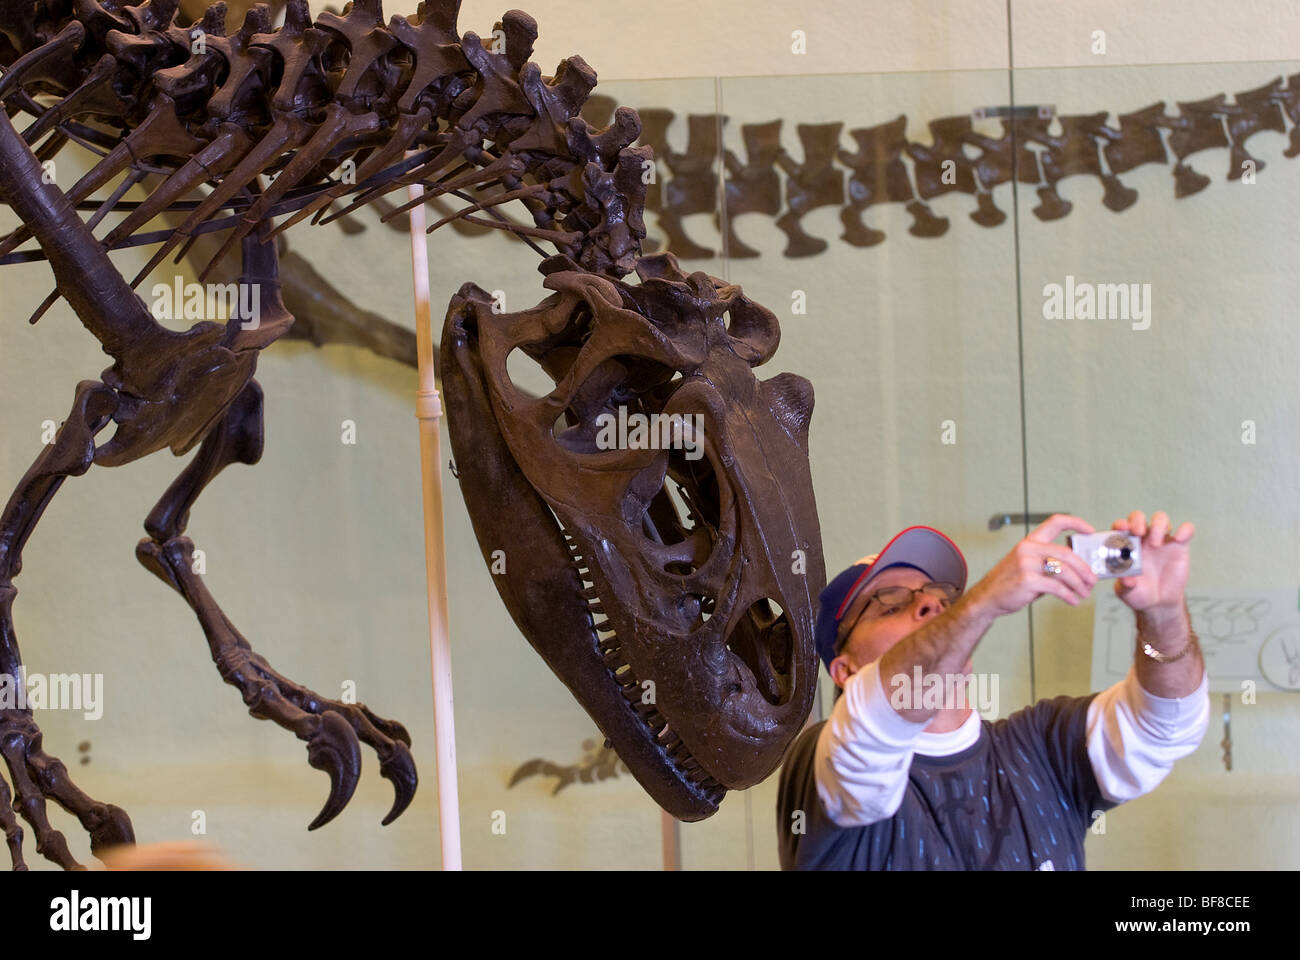 Skeleton of an Allosaurus, Museum of Natural History, New York City - Stock Image